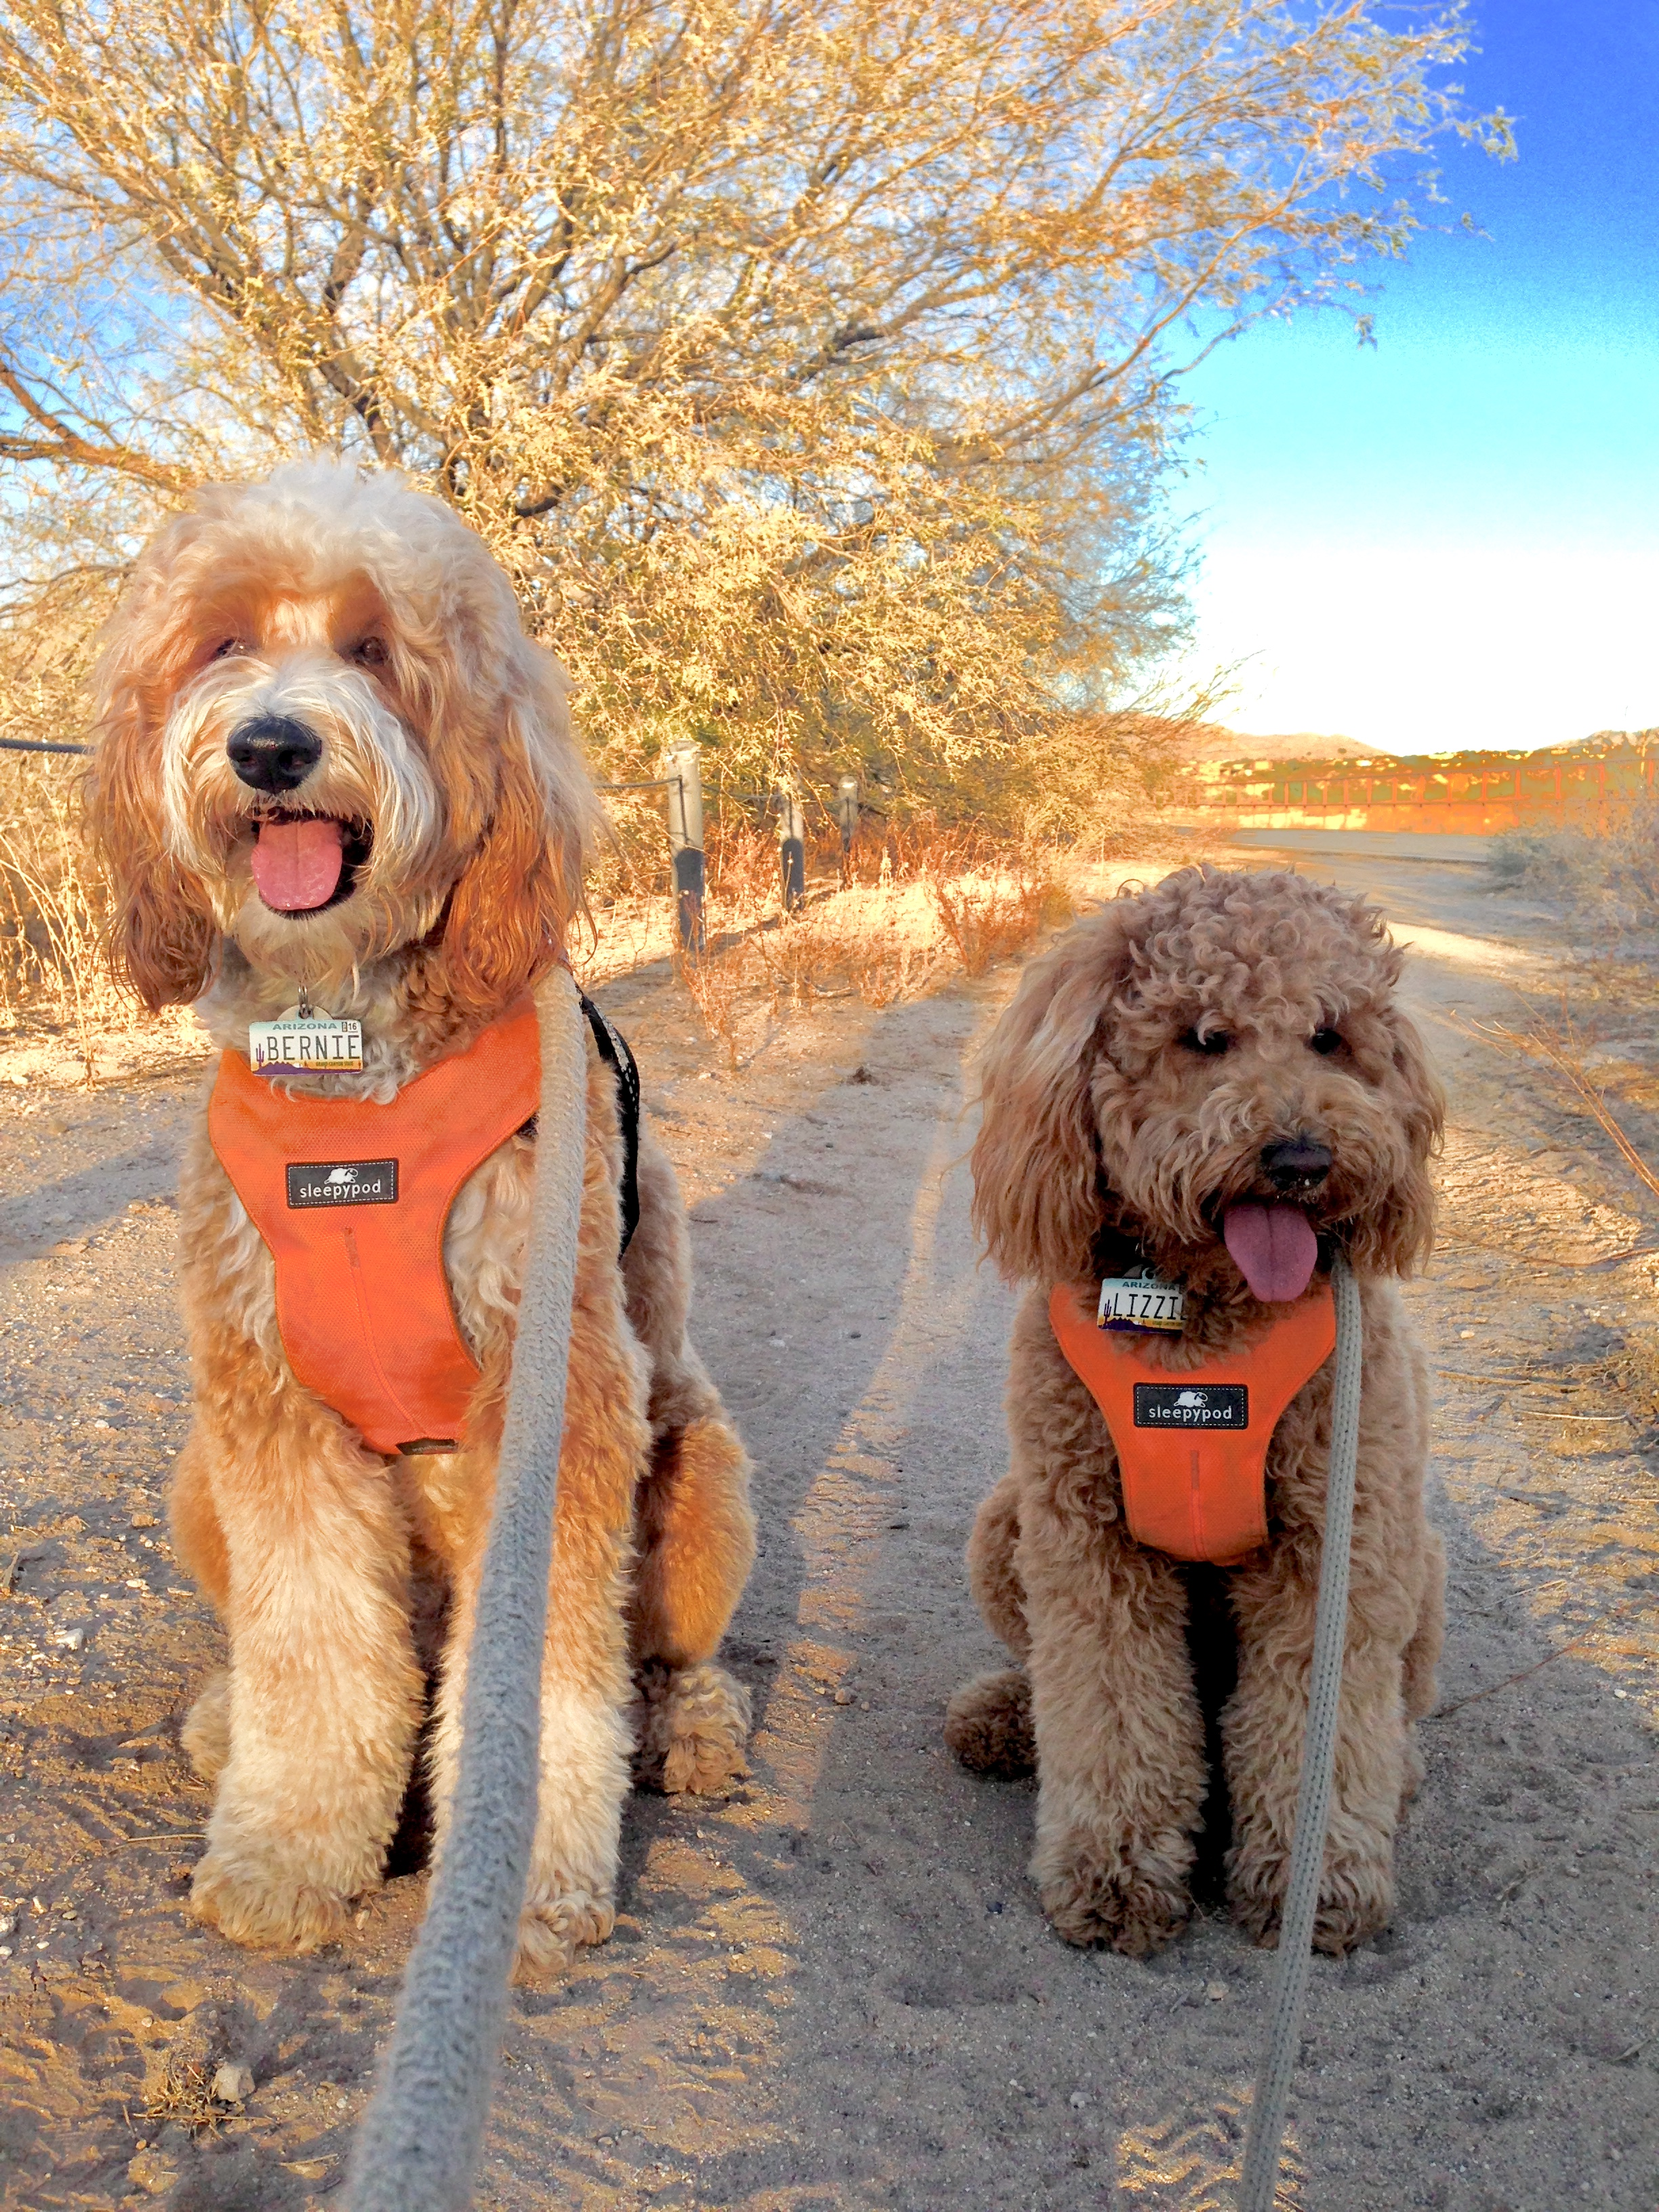 Bernie and Lizzie McSquare prefer walking on the trails on the RIllito River Path. Here they're sitting on the sandy path just outside of George Mehl Park.